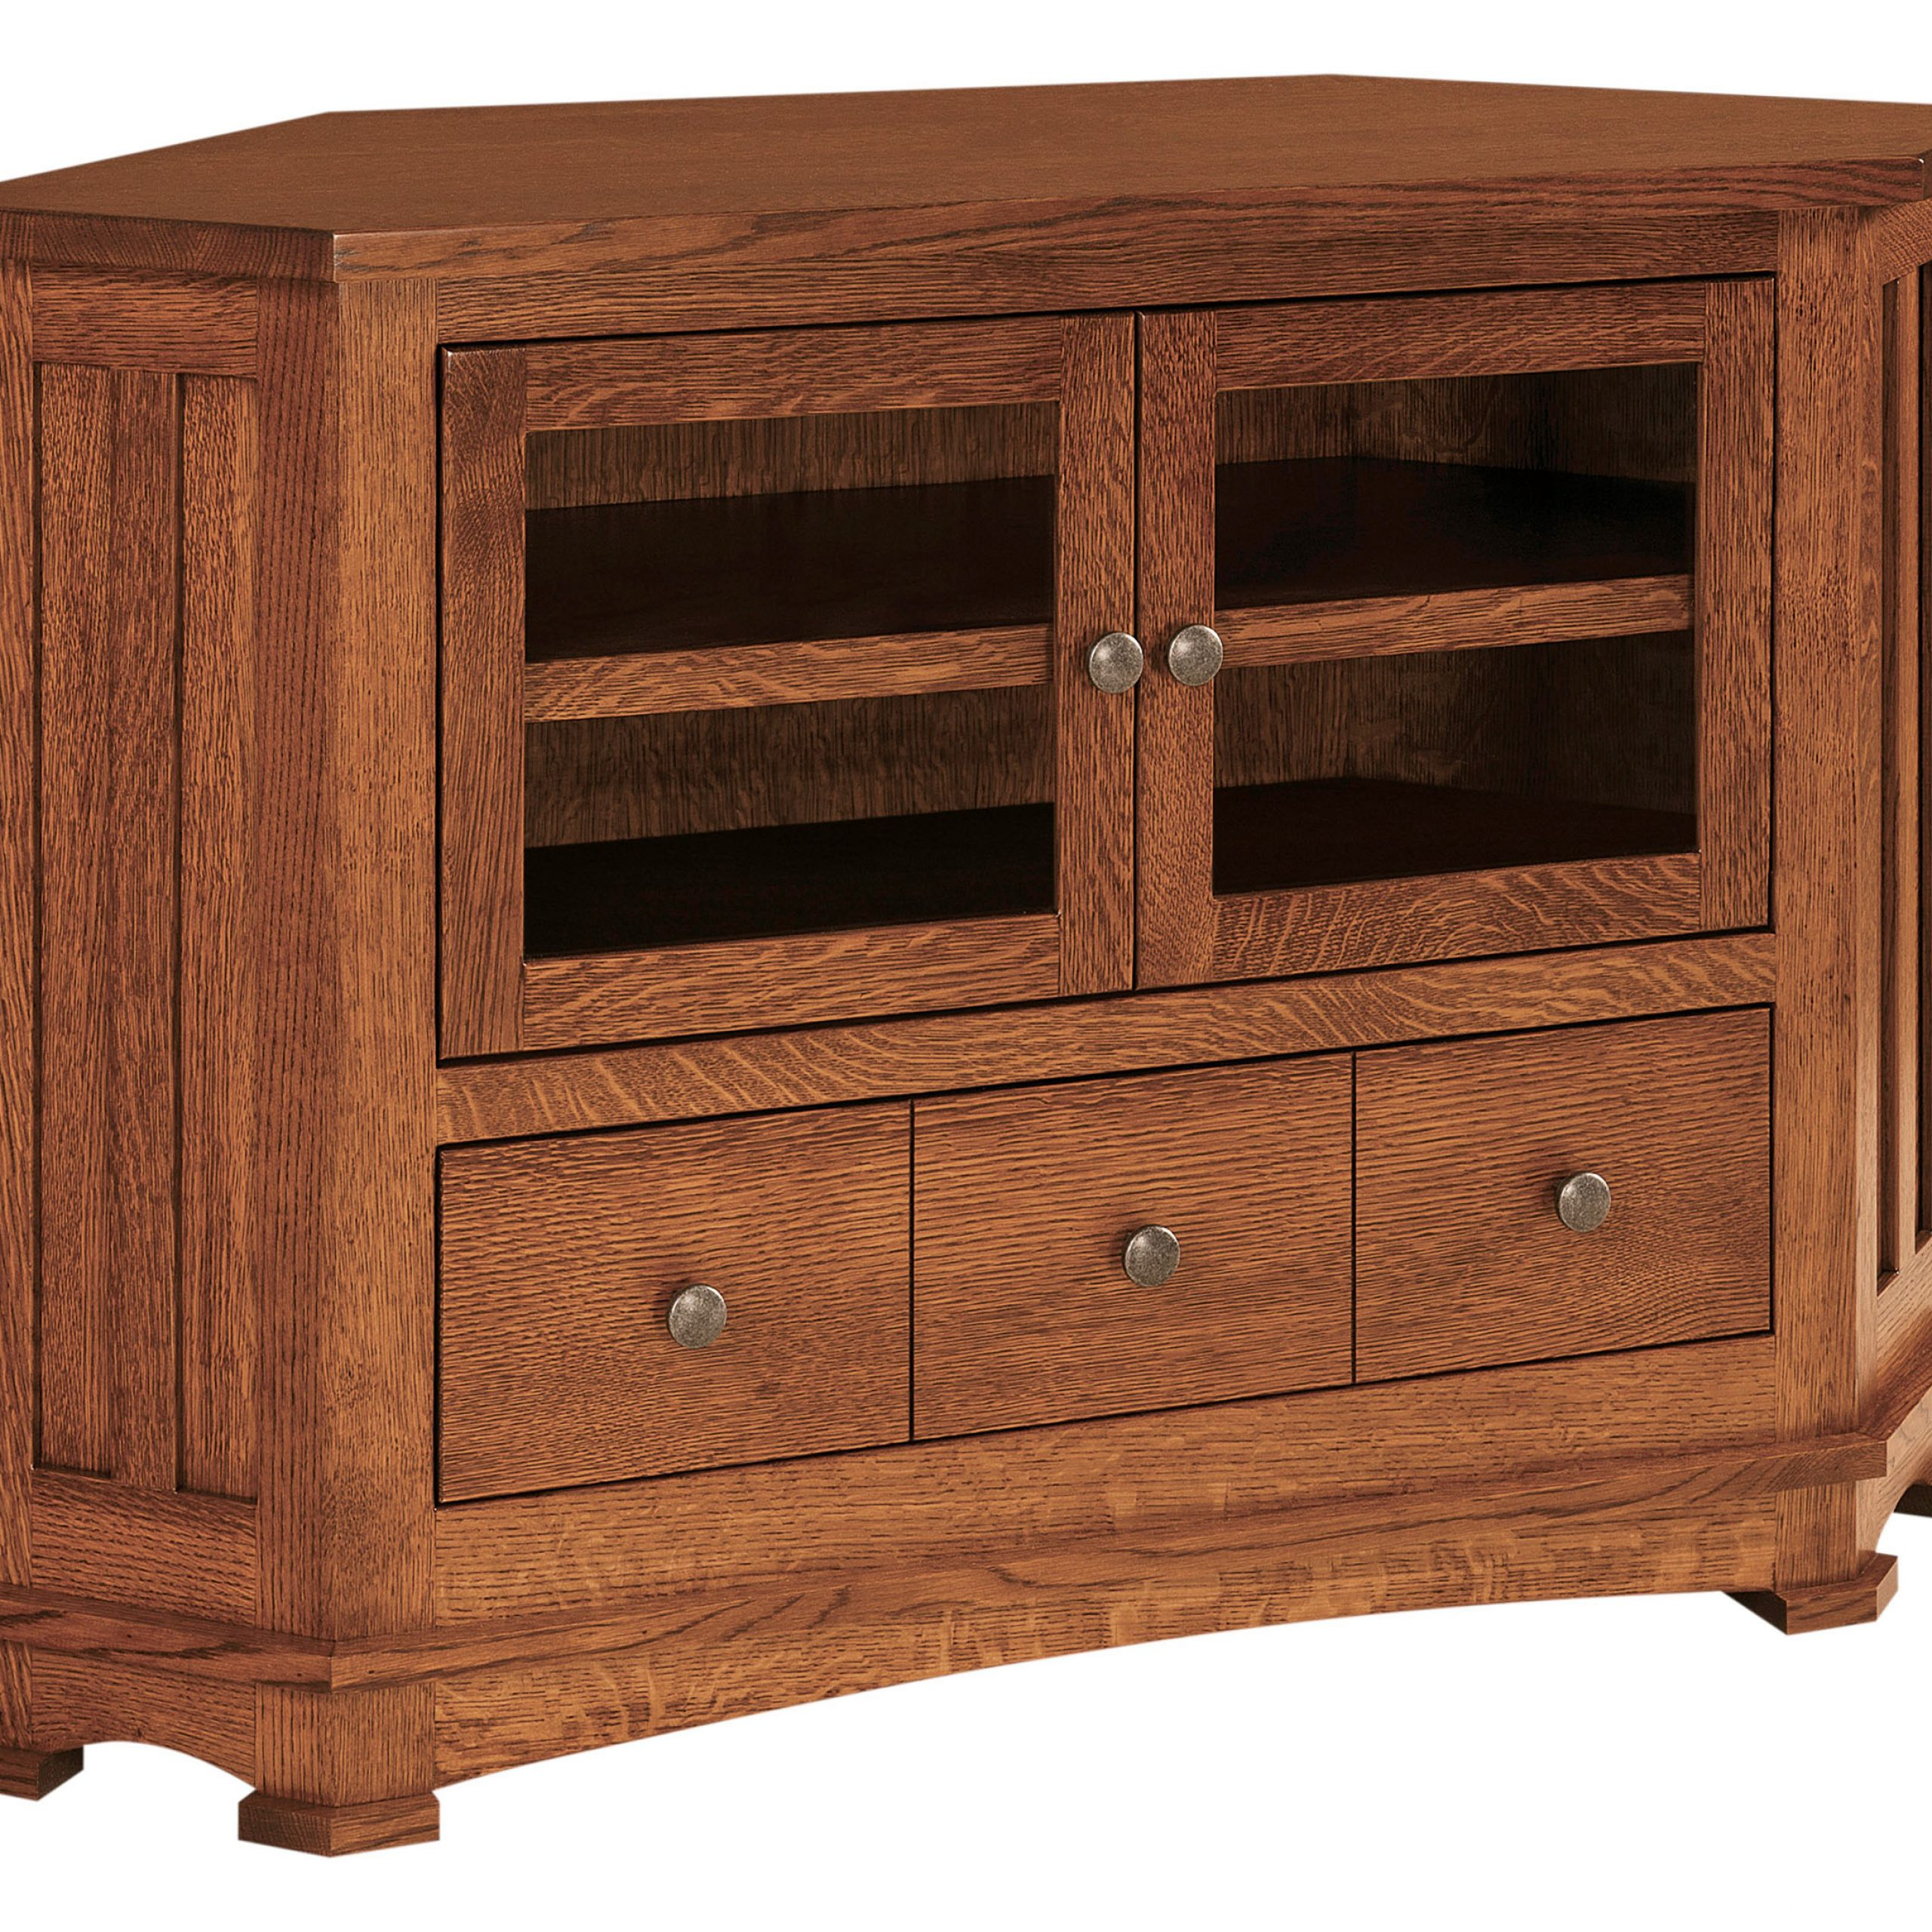 Kenwood Small Corner Tv Stand | Amish Kenwood Small Corner With Regard To Wooden Tv Stand Corner Units (View 2 of 15)